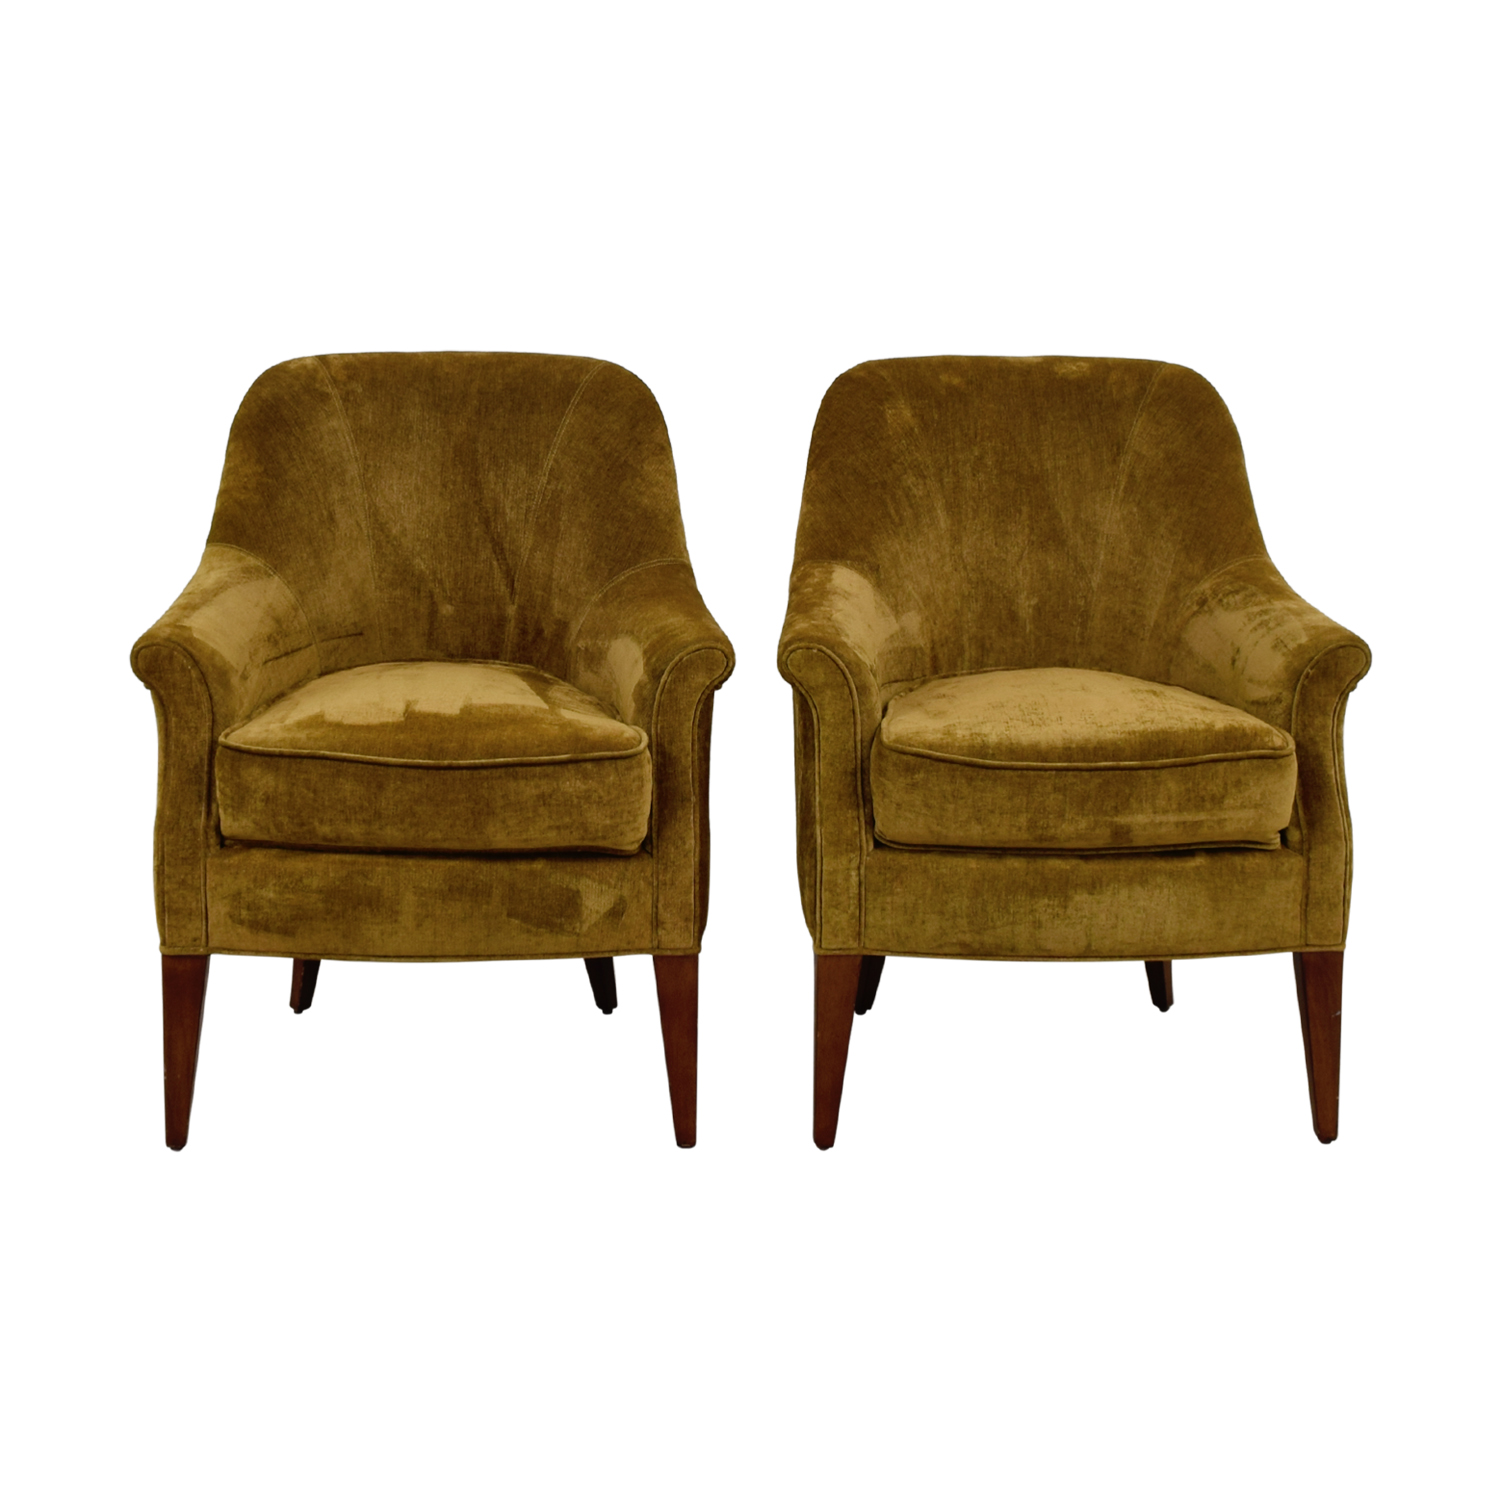 Pier 1 Imports Brown Upholstered Accent Chairs / Chairs ...